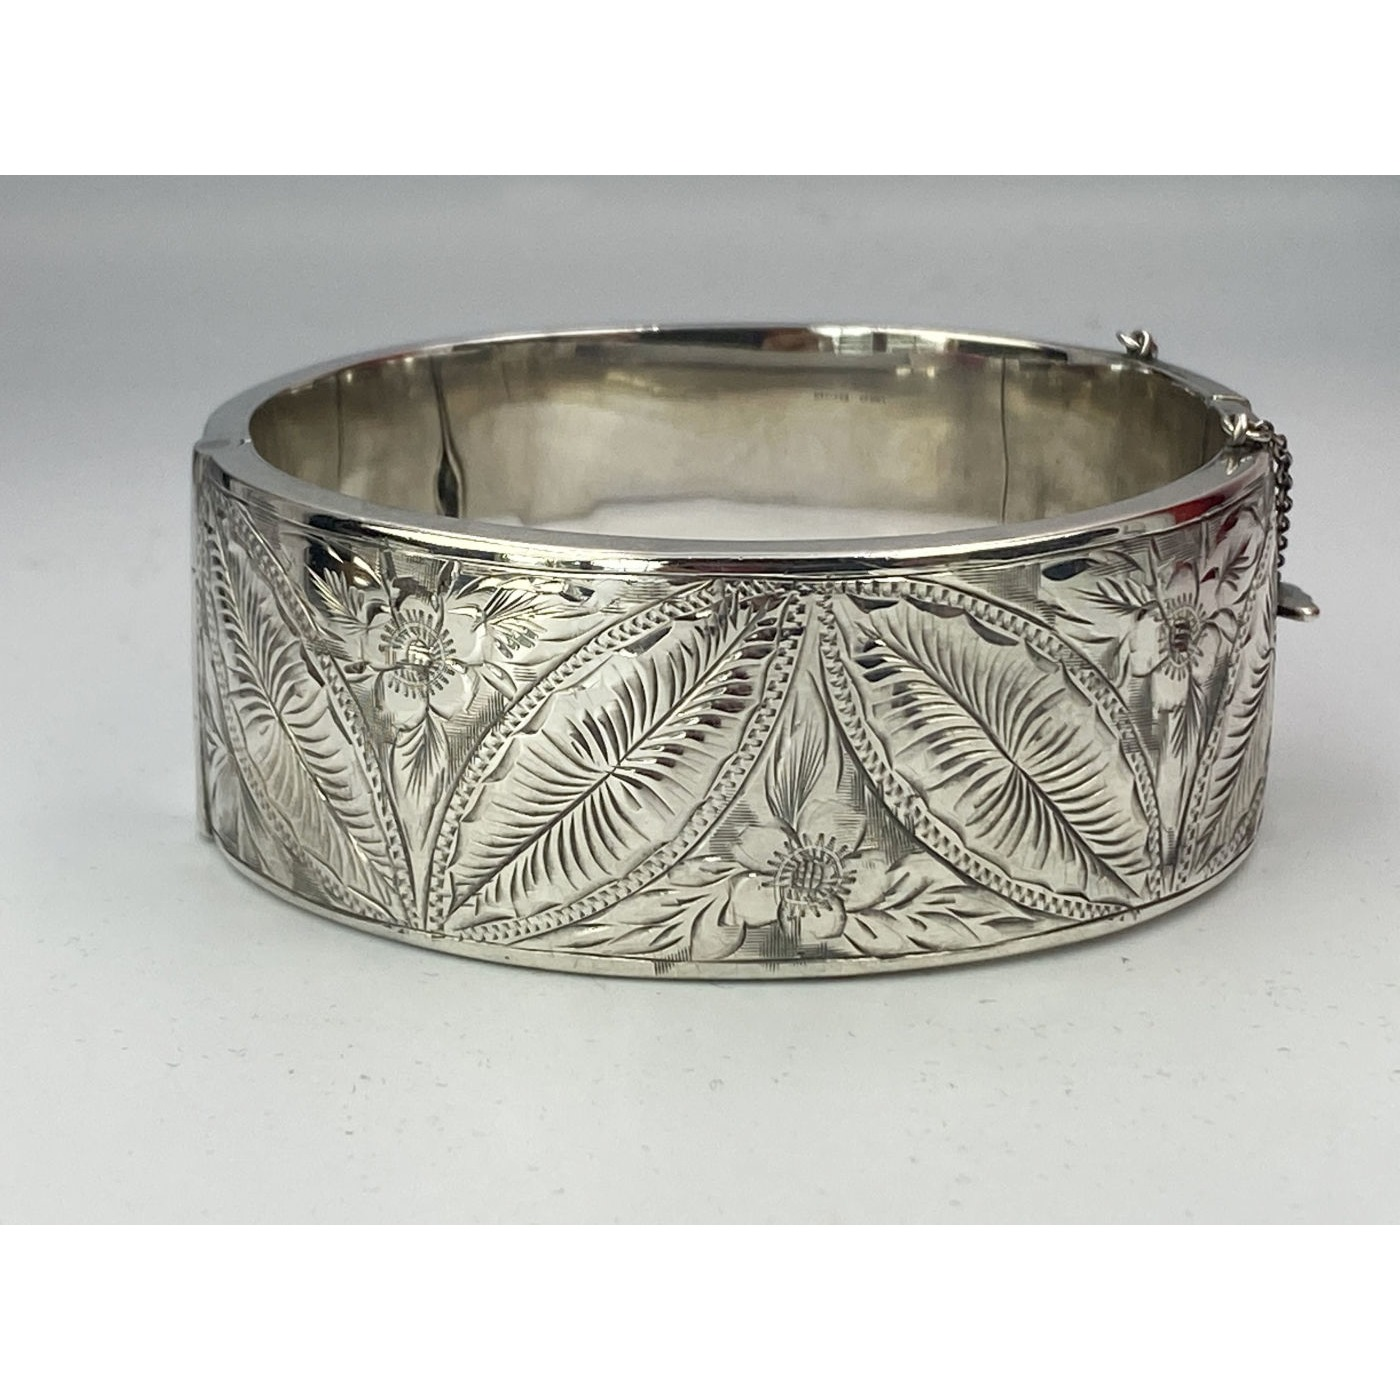 Intricate Detailed Melon-Shaped Leaves Antique English Silver Bangle